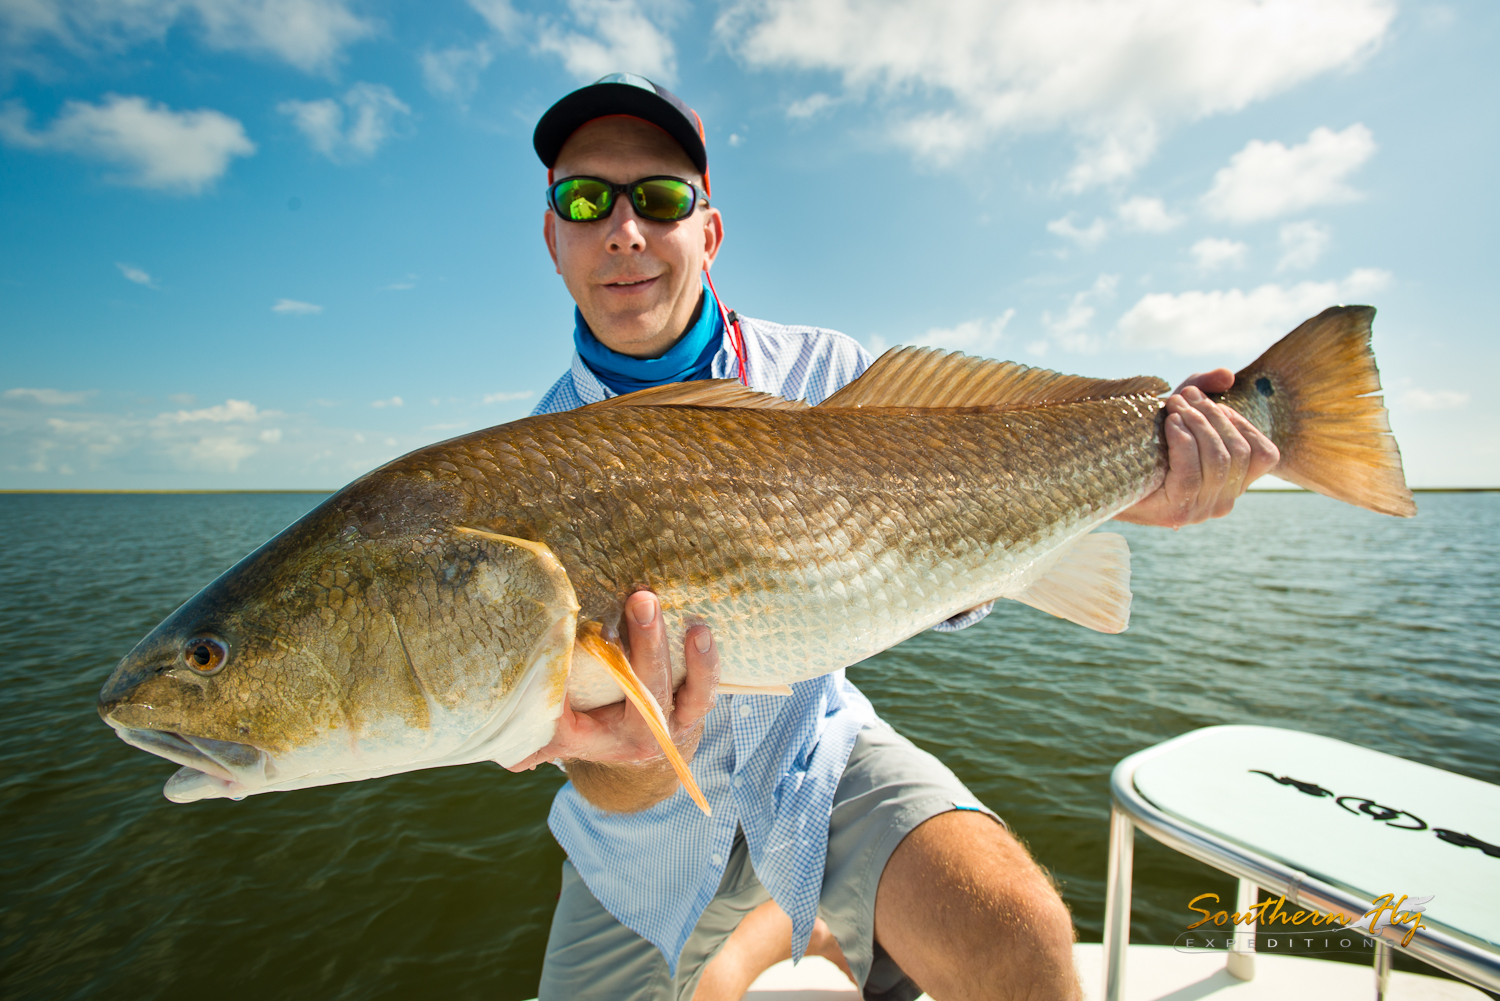 southern fly expeditions - fishing charter fly fishing